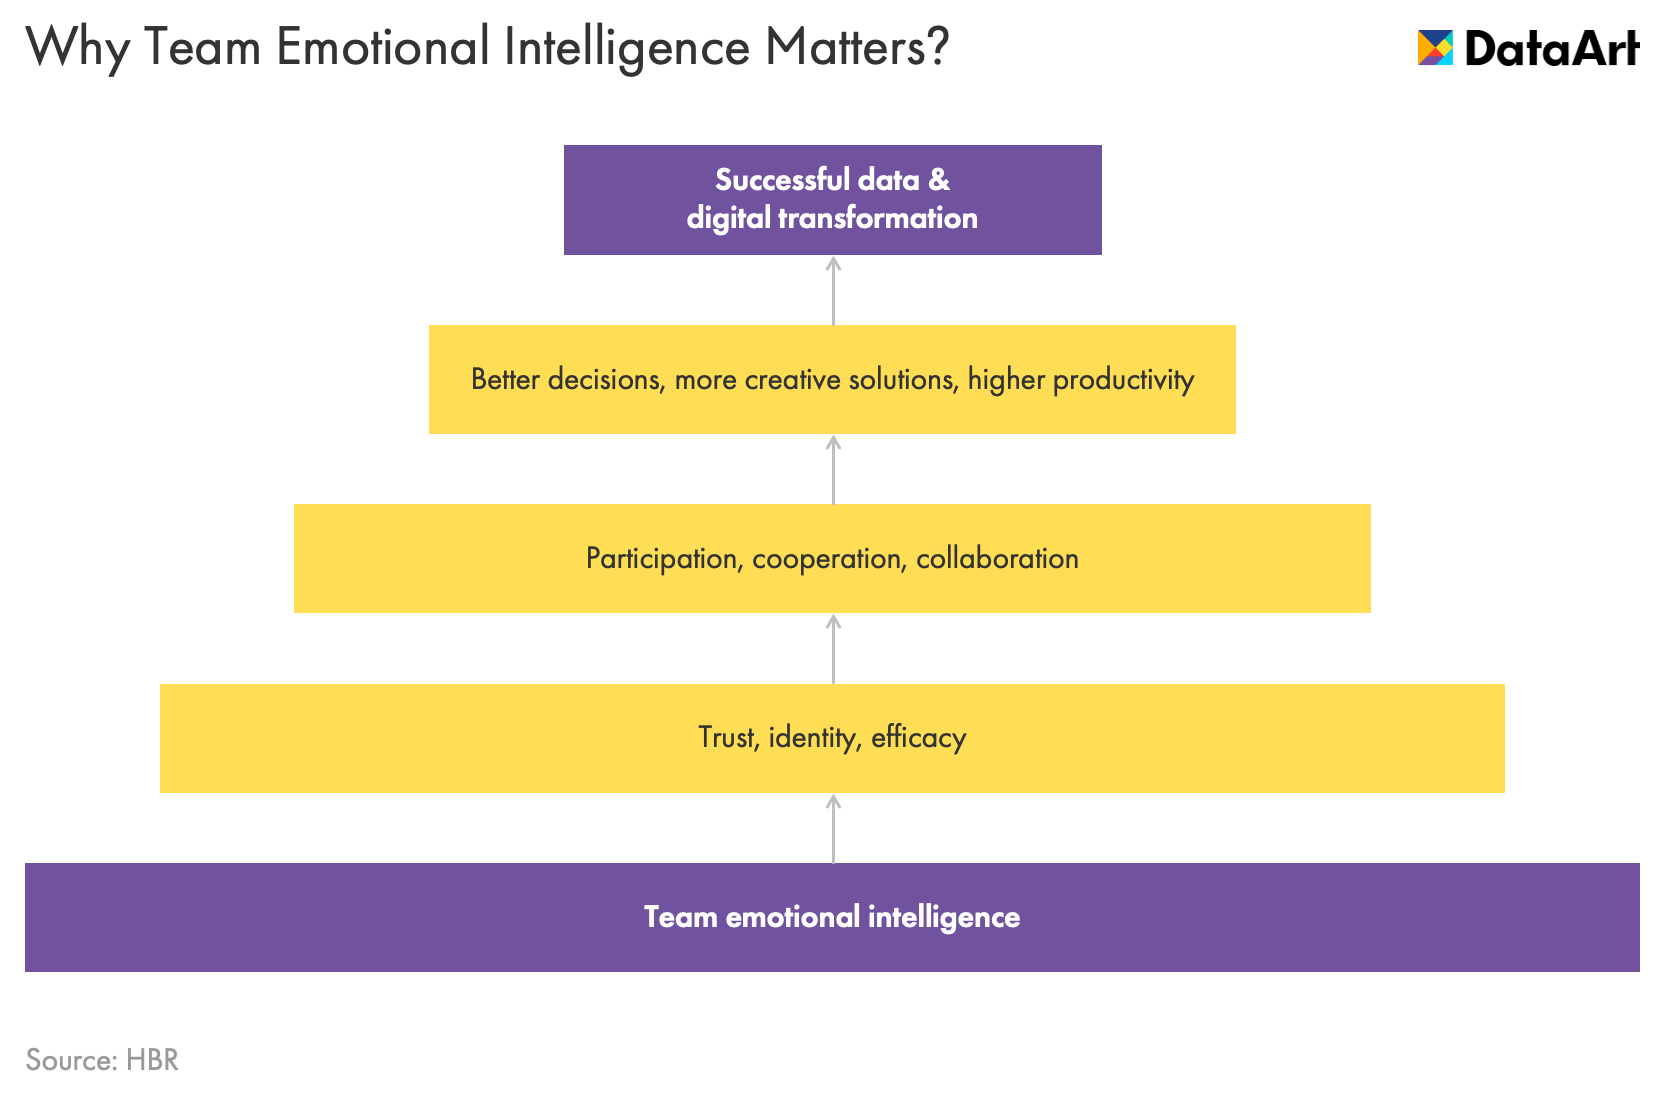 Why Team Emotional Intelligence Matters